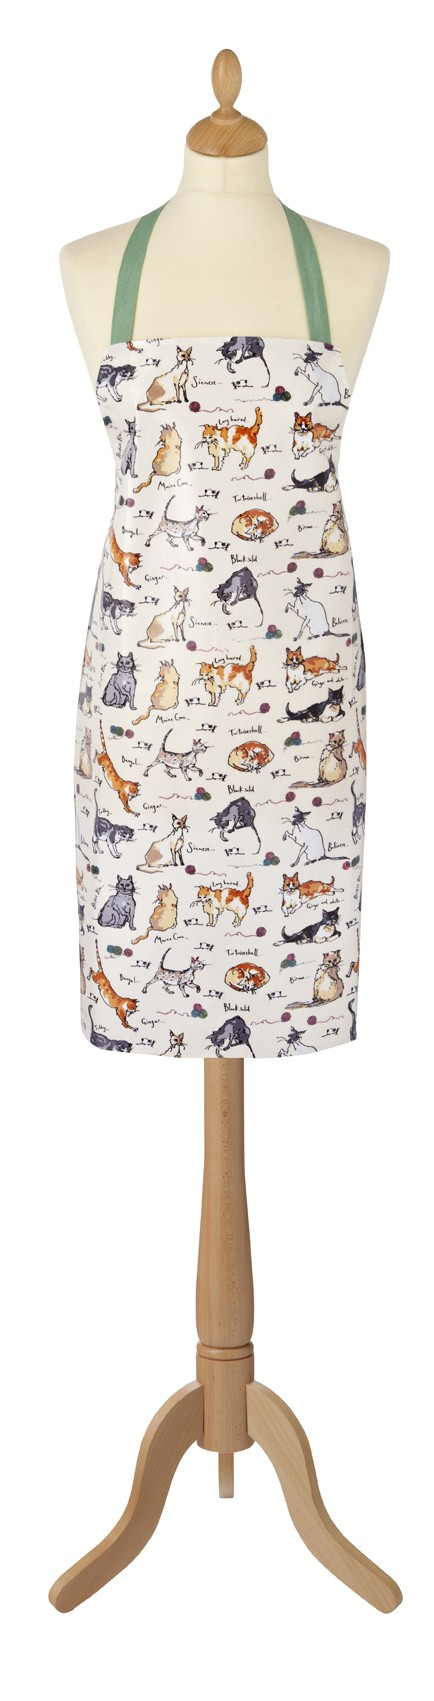 MF Cats PVC Apron